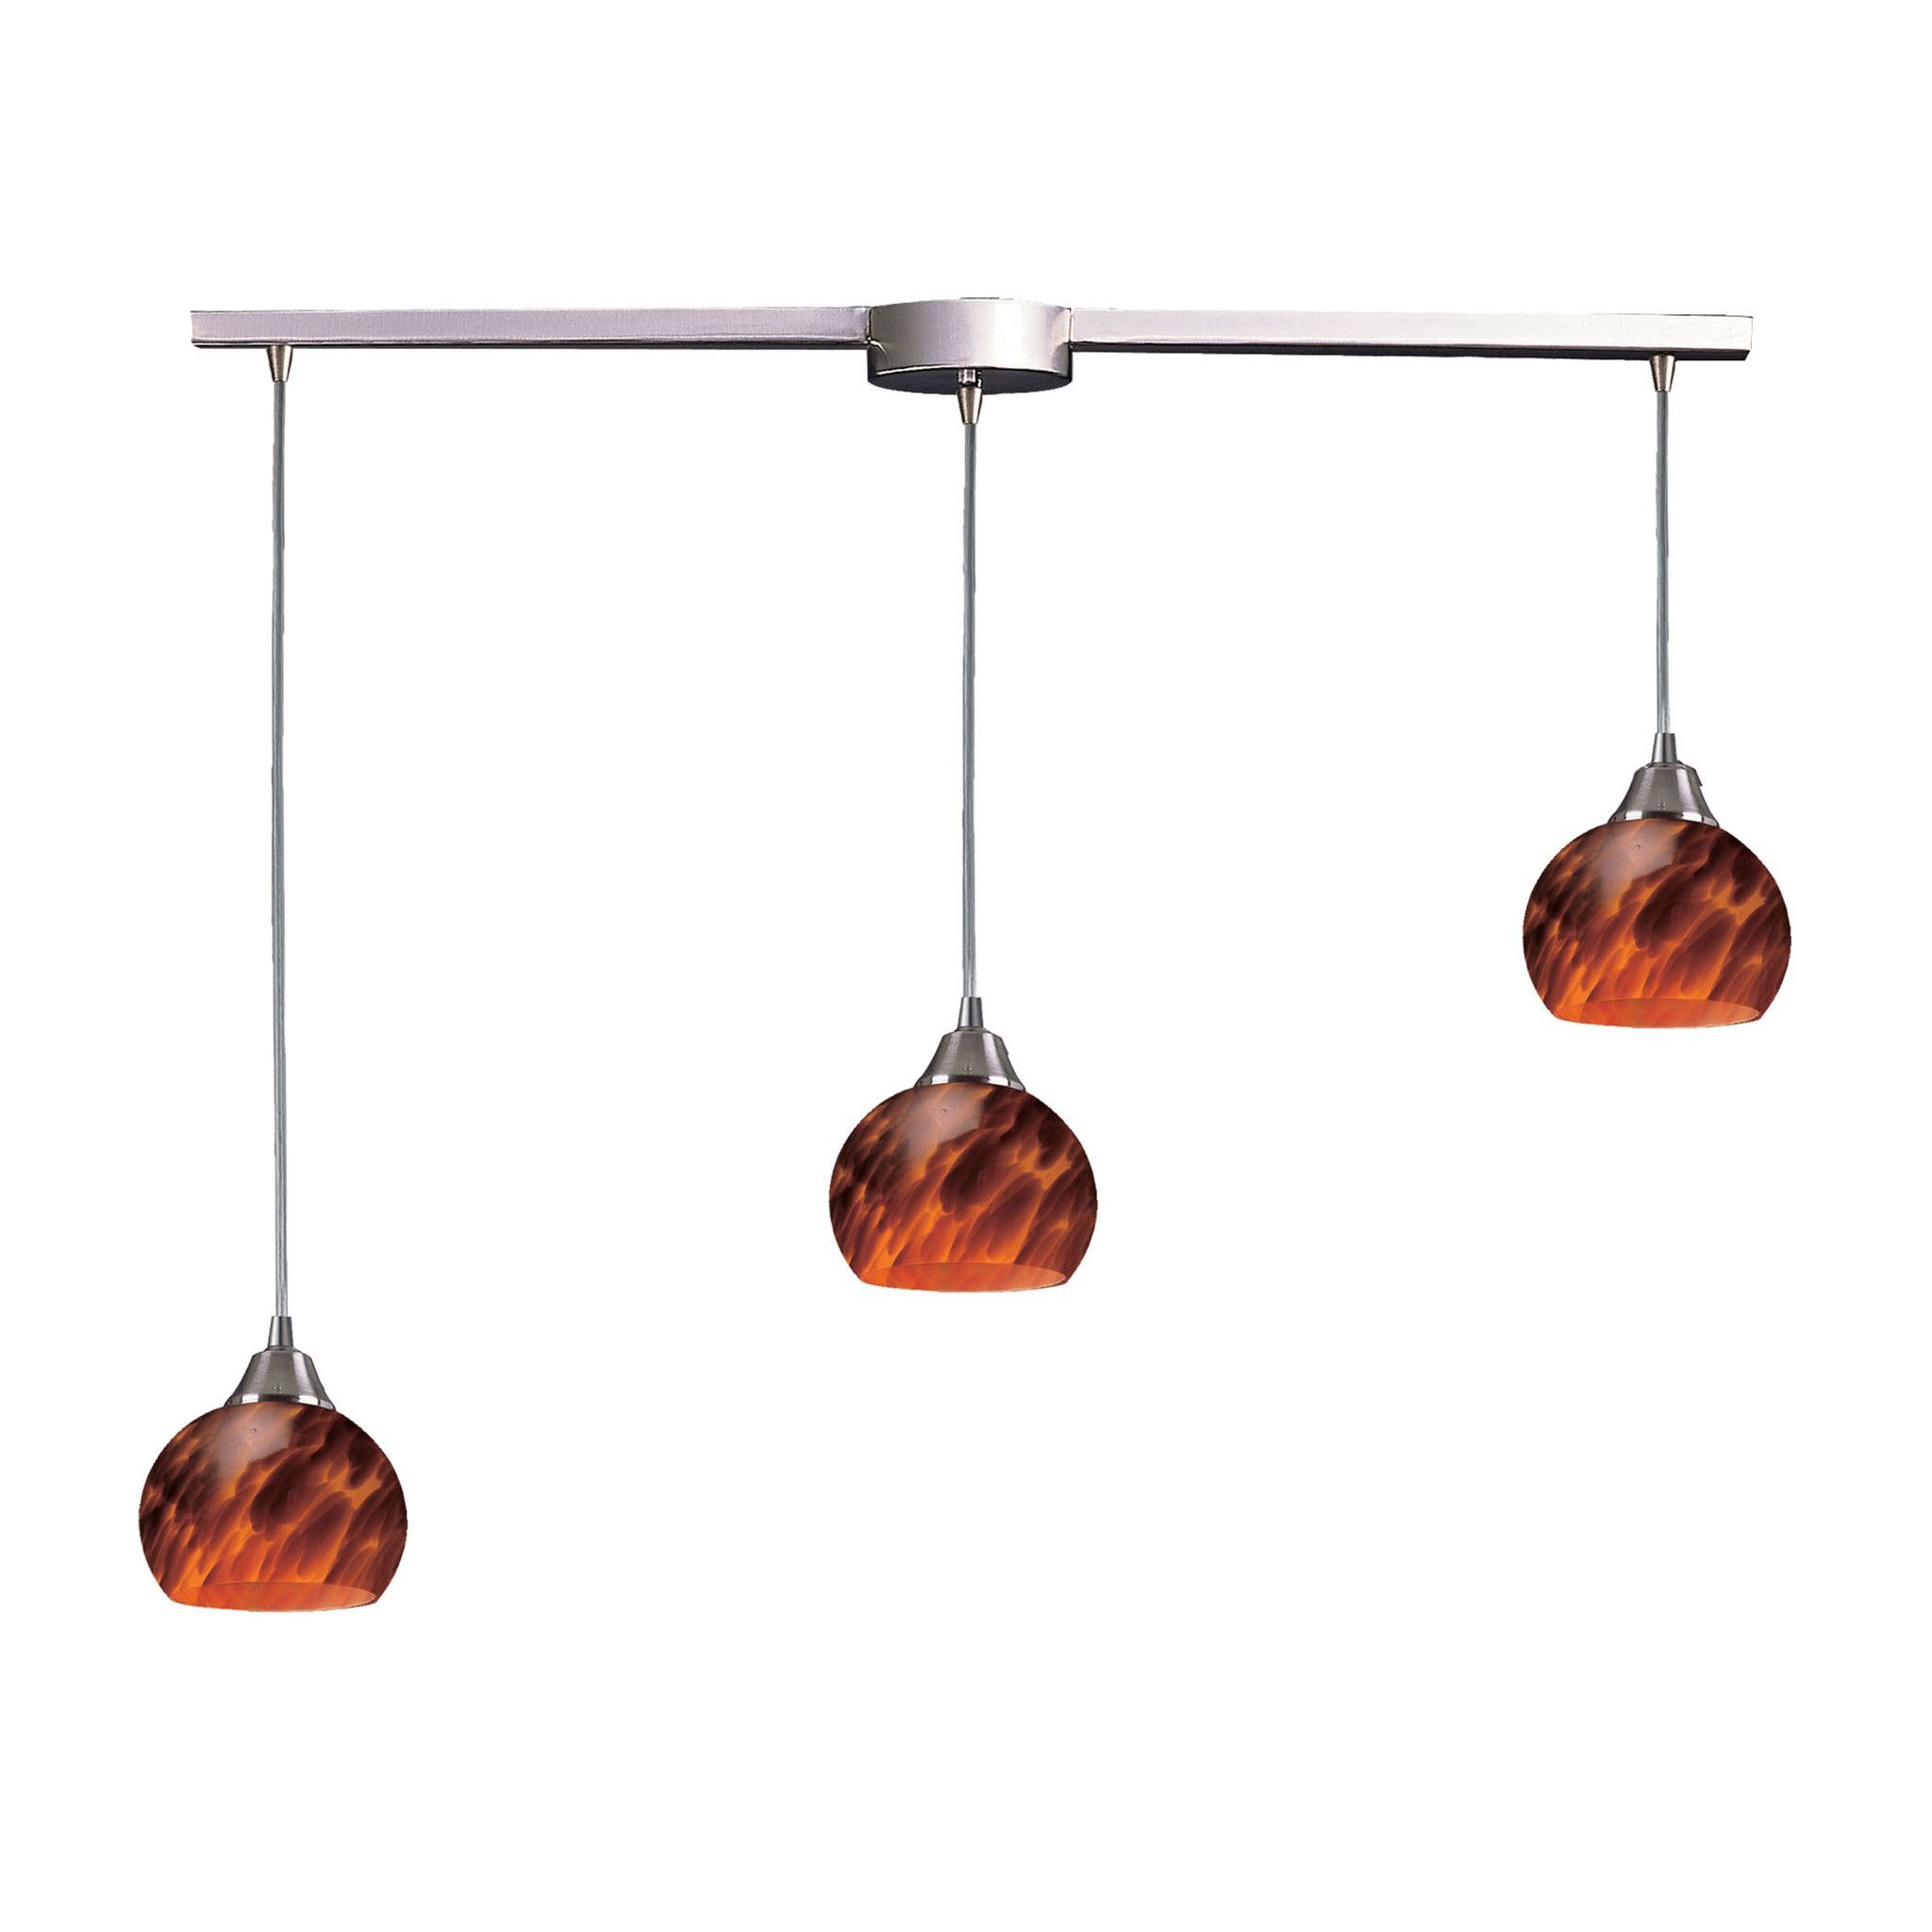 Mela light pendant in satin nickel and espresso products